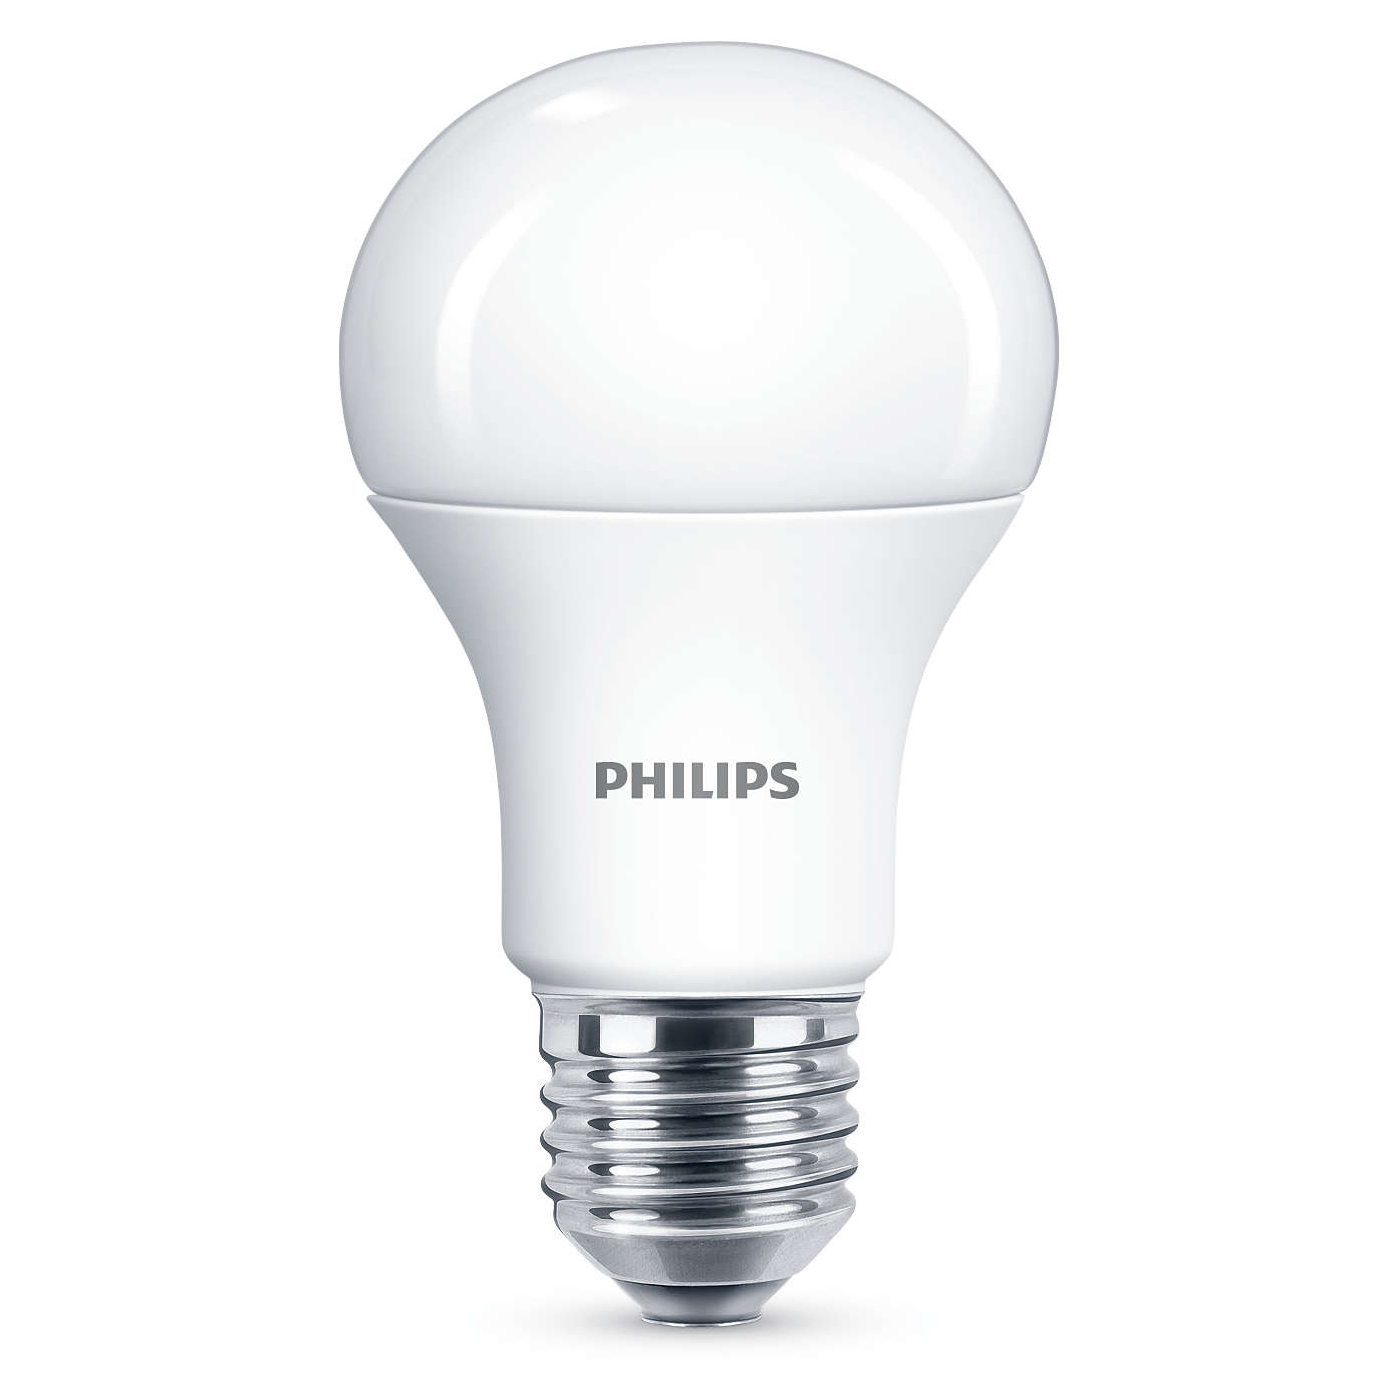 philips 8718696510162 e27 edison screw 11 w led light bulb. Black Bedroom Furniture Sets. Home Design Ideas